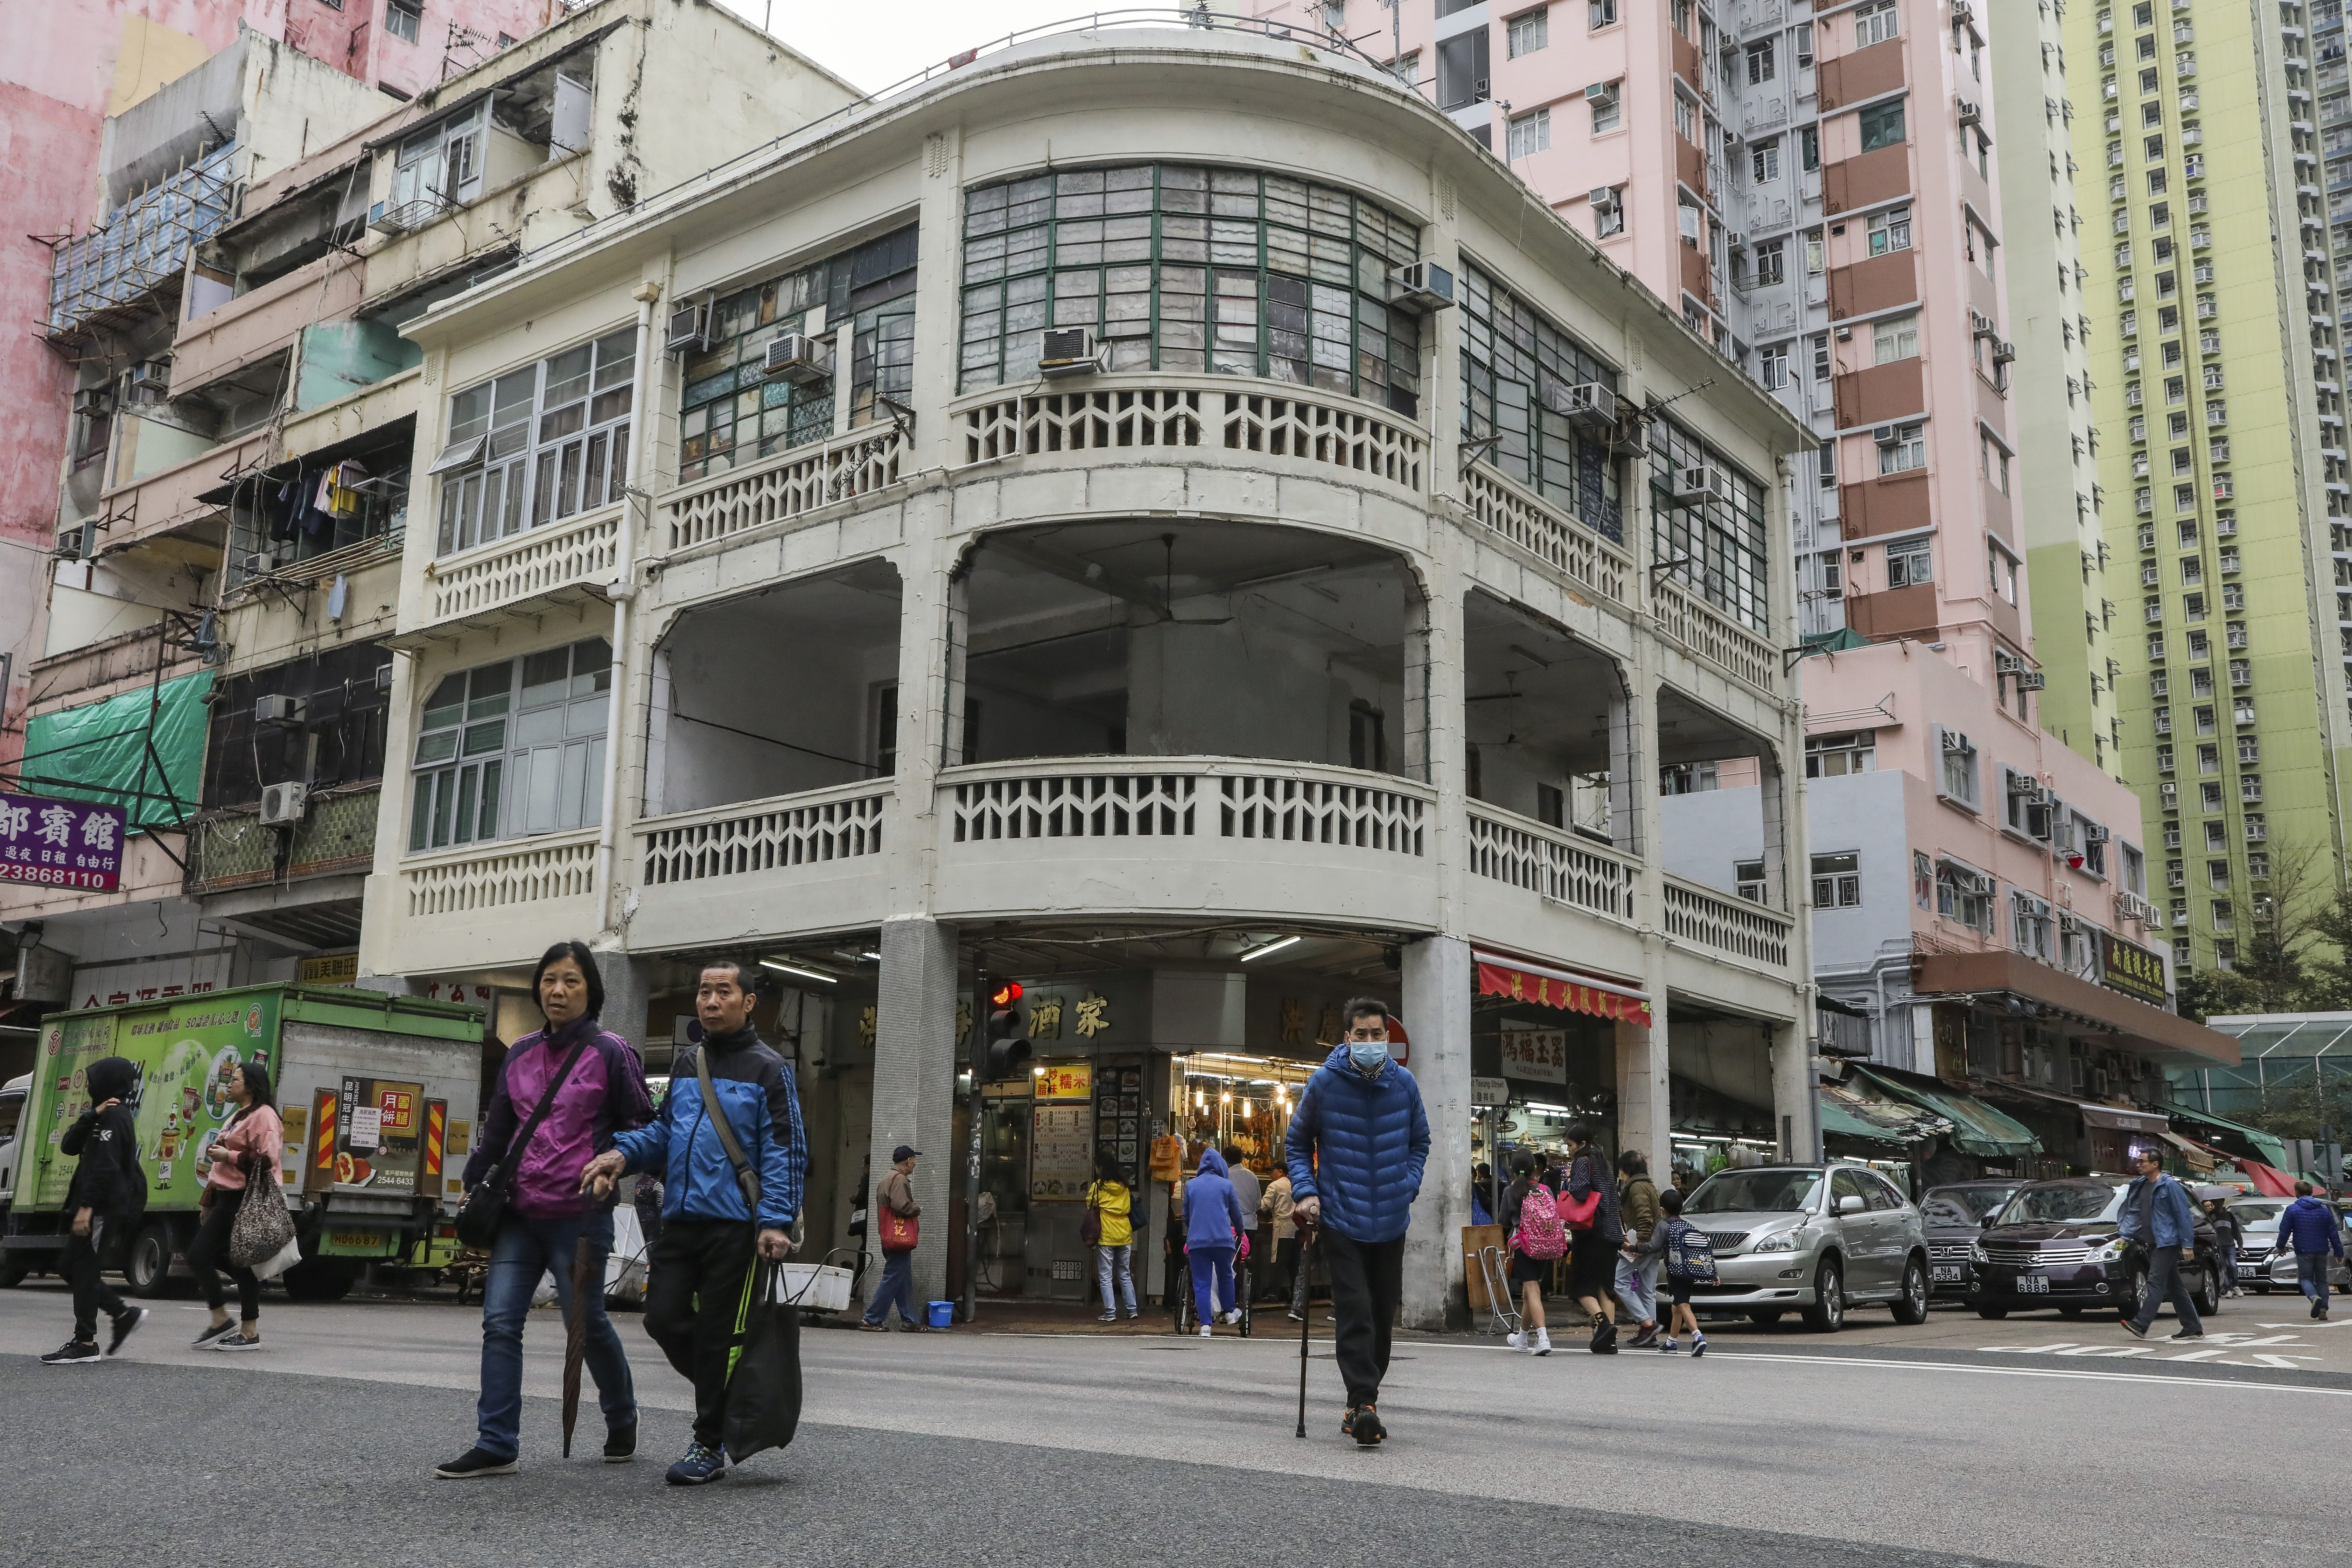 44ca5b720 Hong Kong heritage board outraged as pre-war Chinese tenement block under  threat of demolition